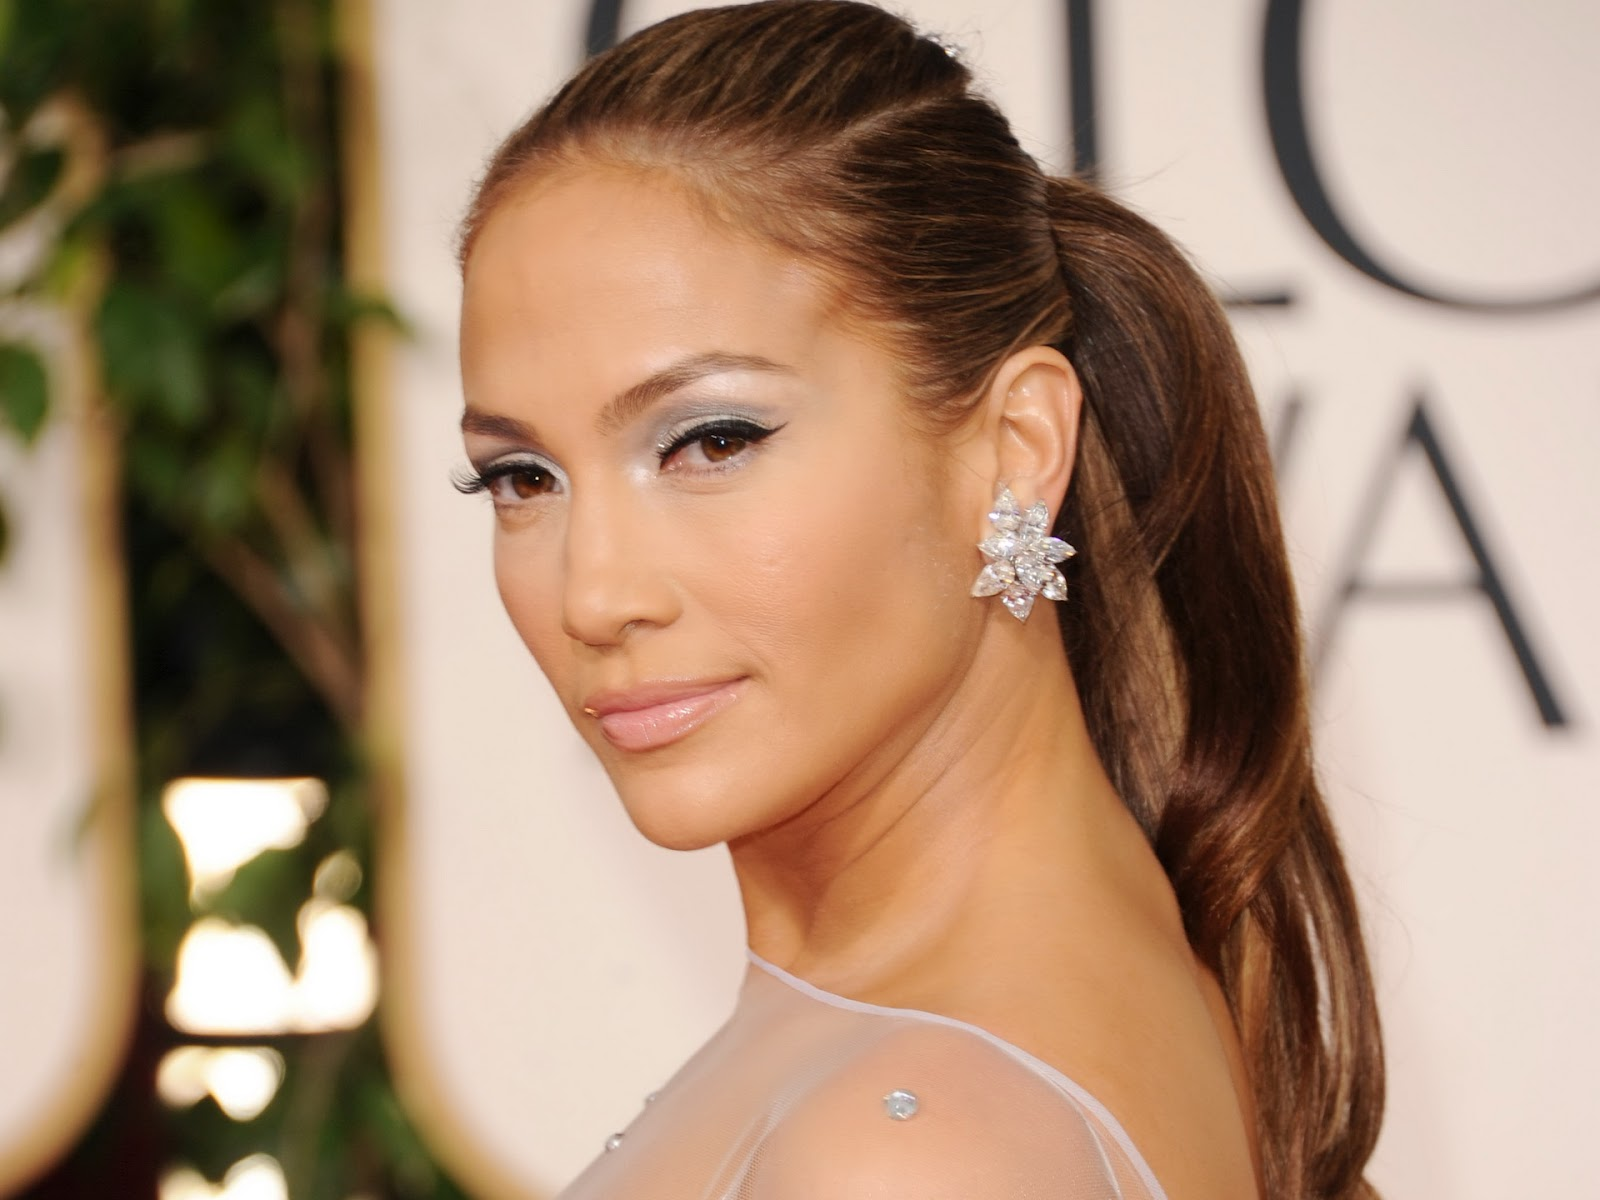 blogspotcom jennifer lopez - photo #27